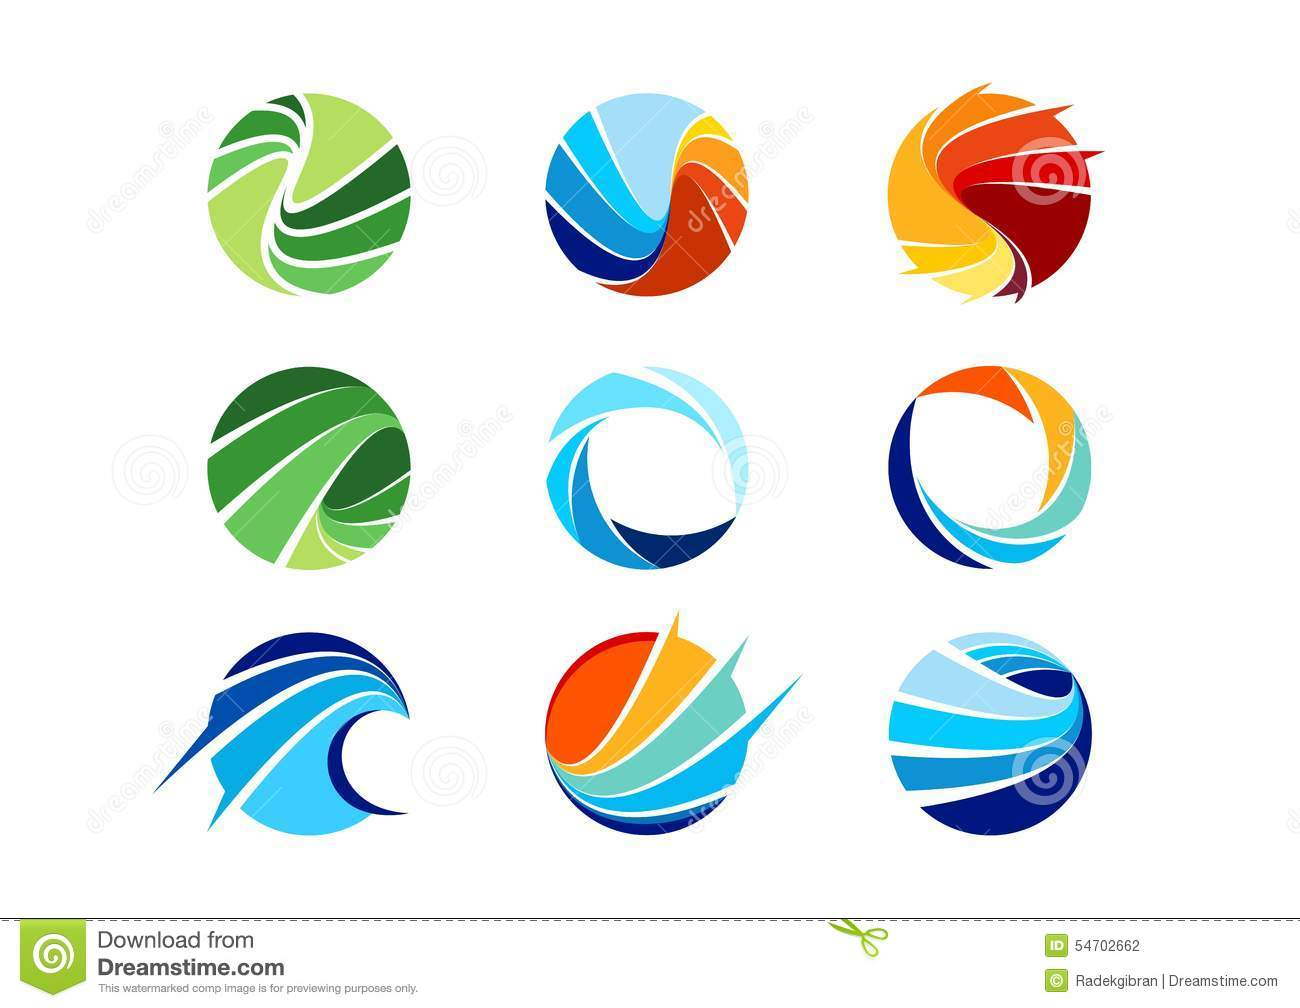 Download Sphere,circle,logo,global,abstract,business,company,corporation,infinity,Set Of Round Icon Symbol Vector Design Stock Vector - Illustration of digital, global: 54702662